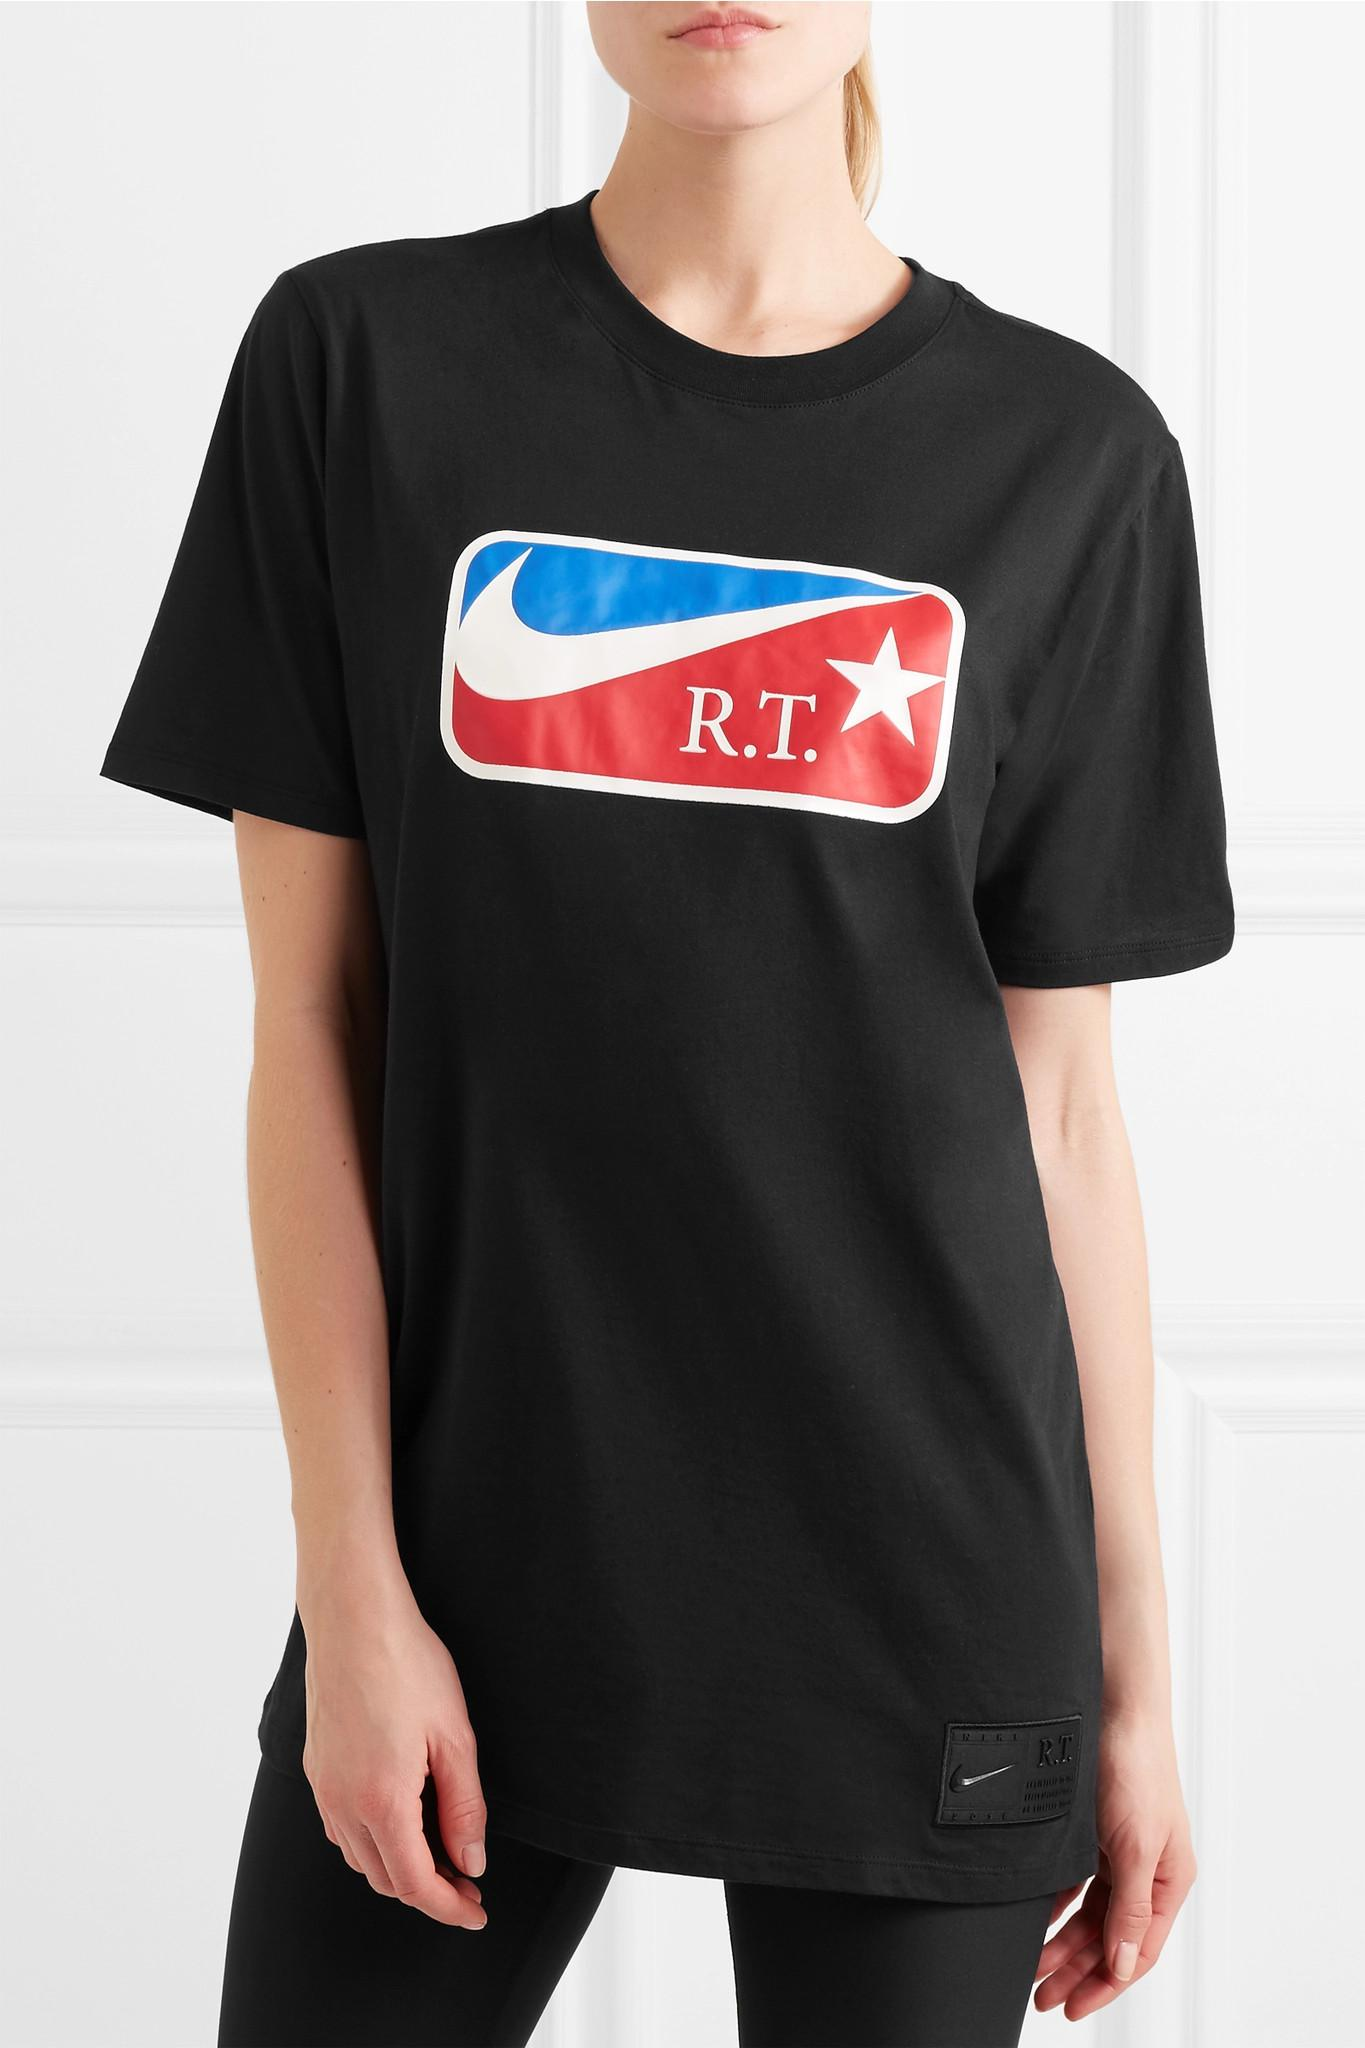 Visa Payment Cheap Price Affordable + Riccardo Tisci Nikelab Printed Cotton-jersey T-shirt - Black Nike Pay With Paypal Fast Delivery Online Best Sale Cheap Online T17gb4MO